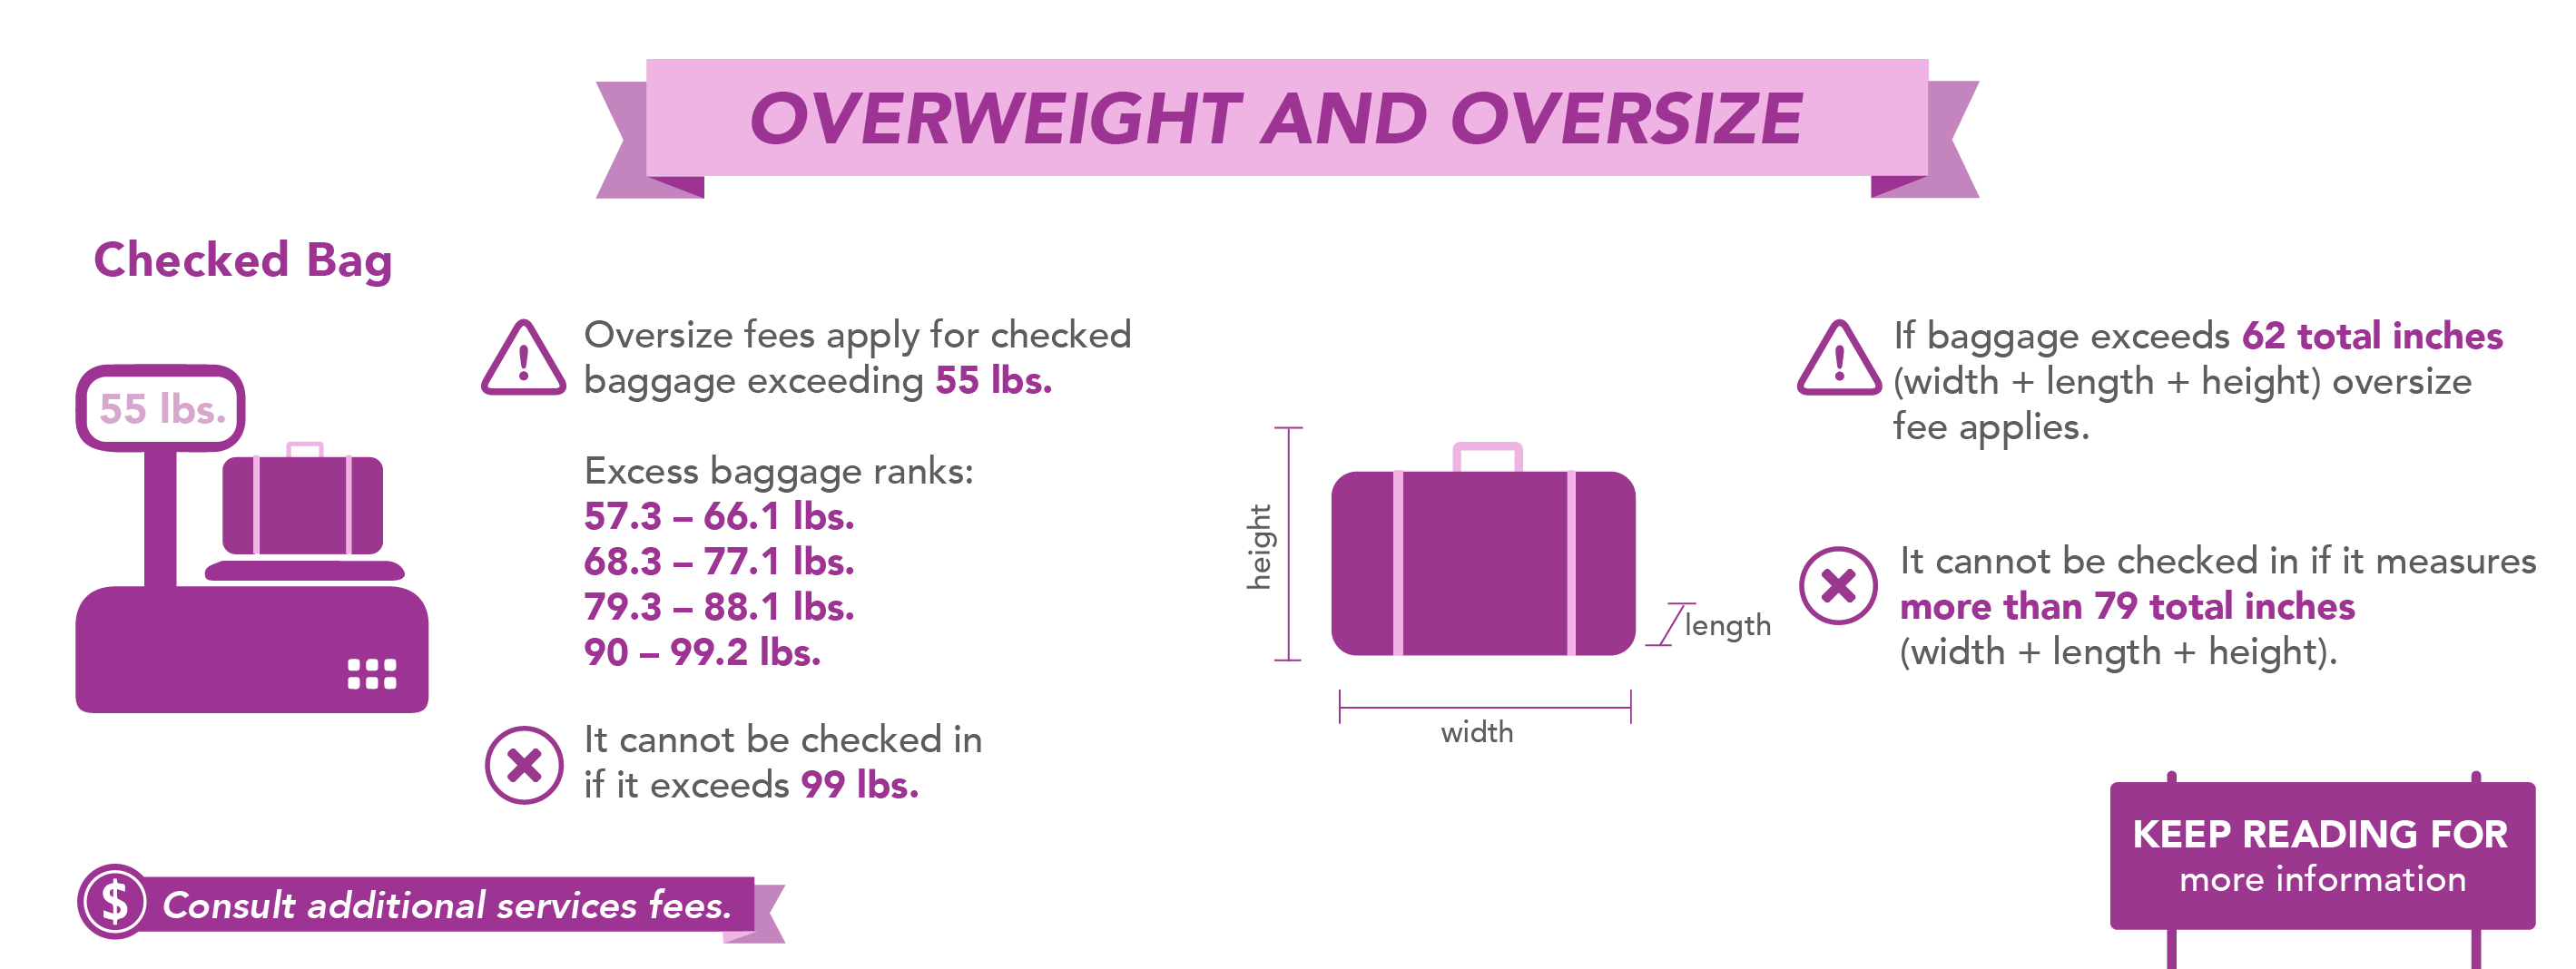 Overweight and oversized baggage